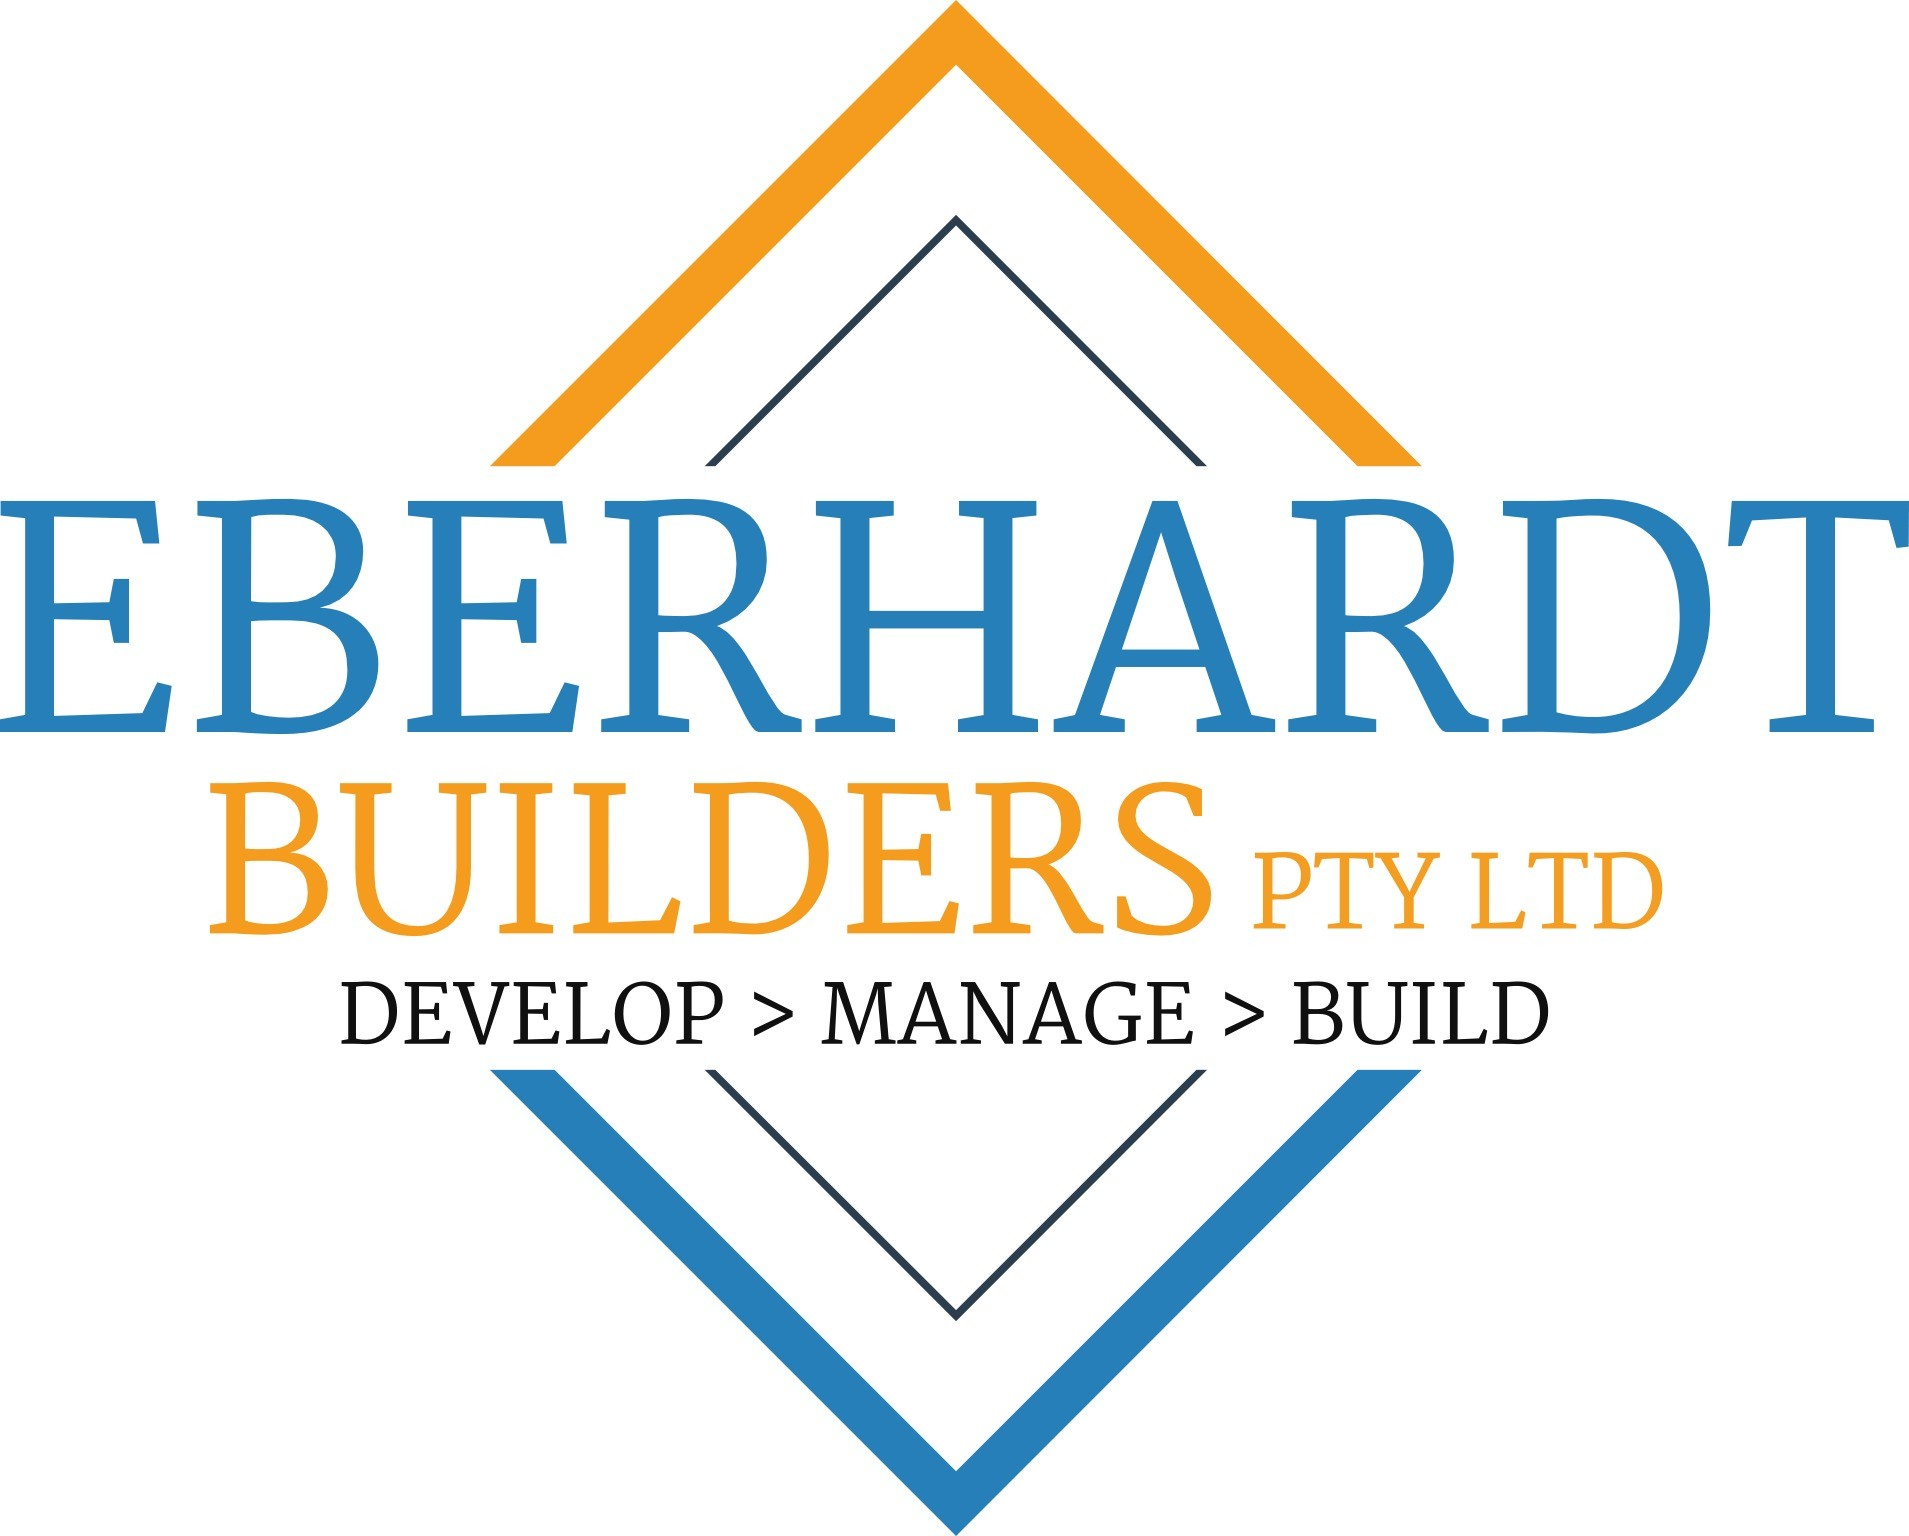 EBERHARDT BUILDERS PTY LTD